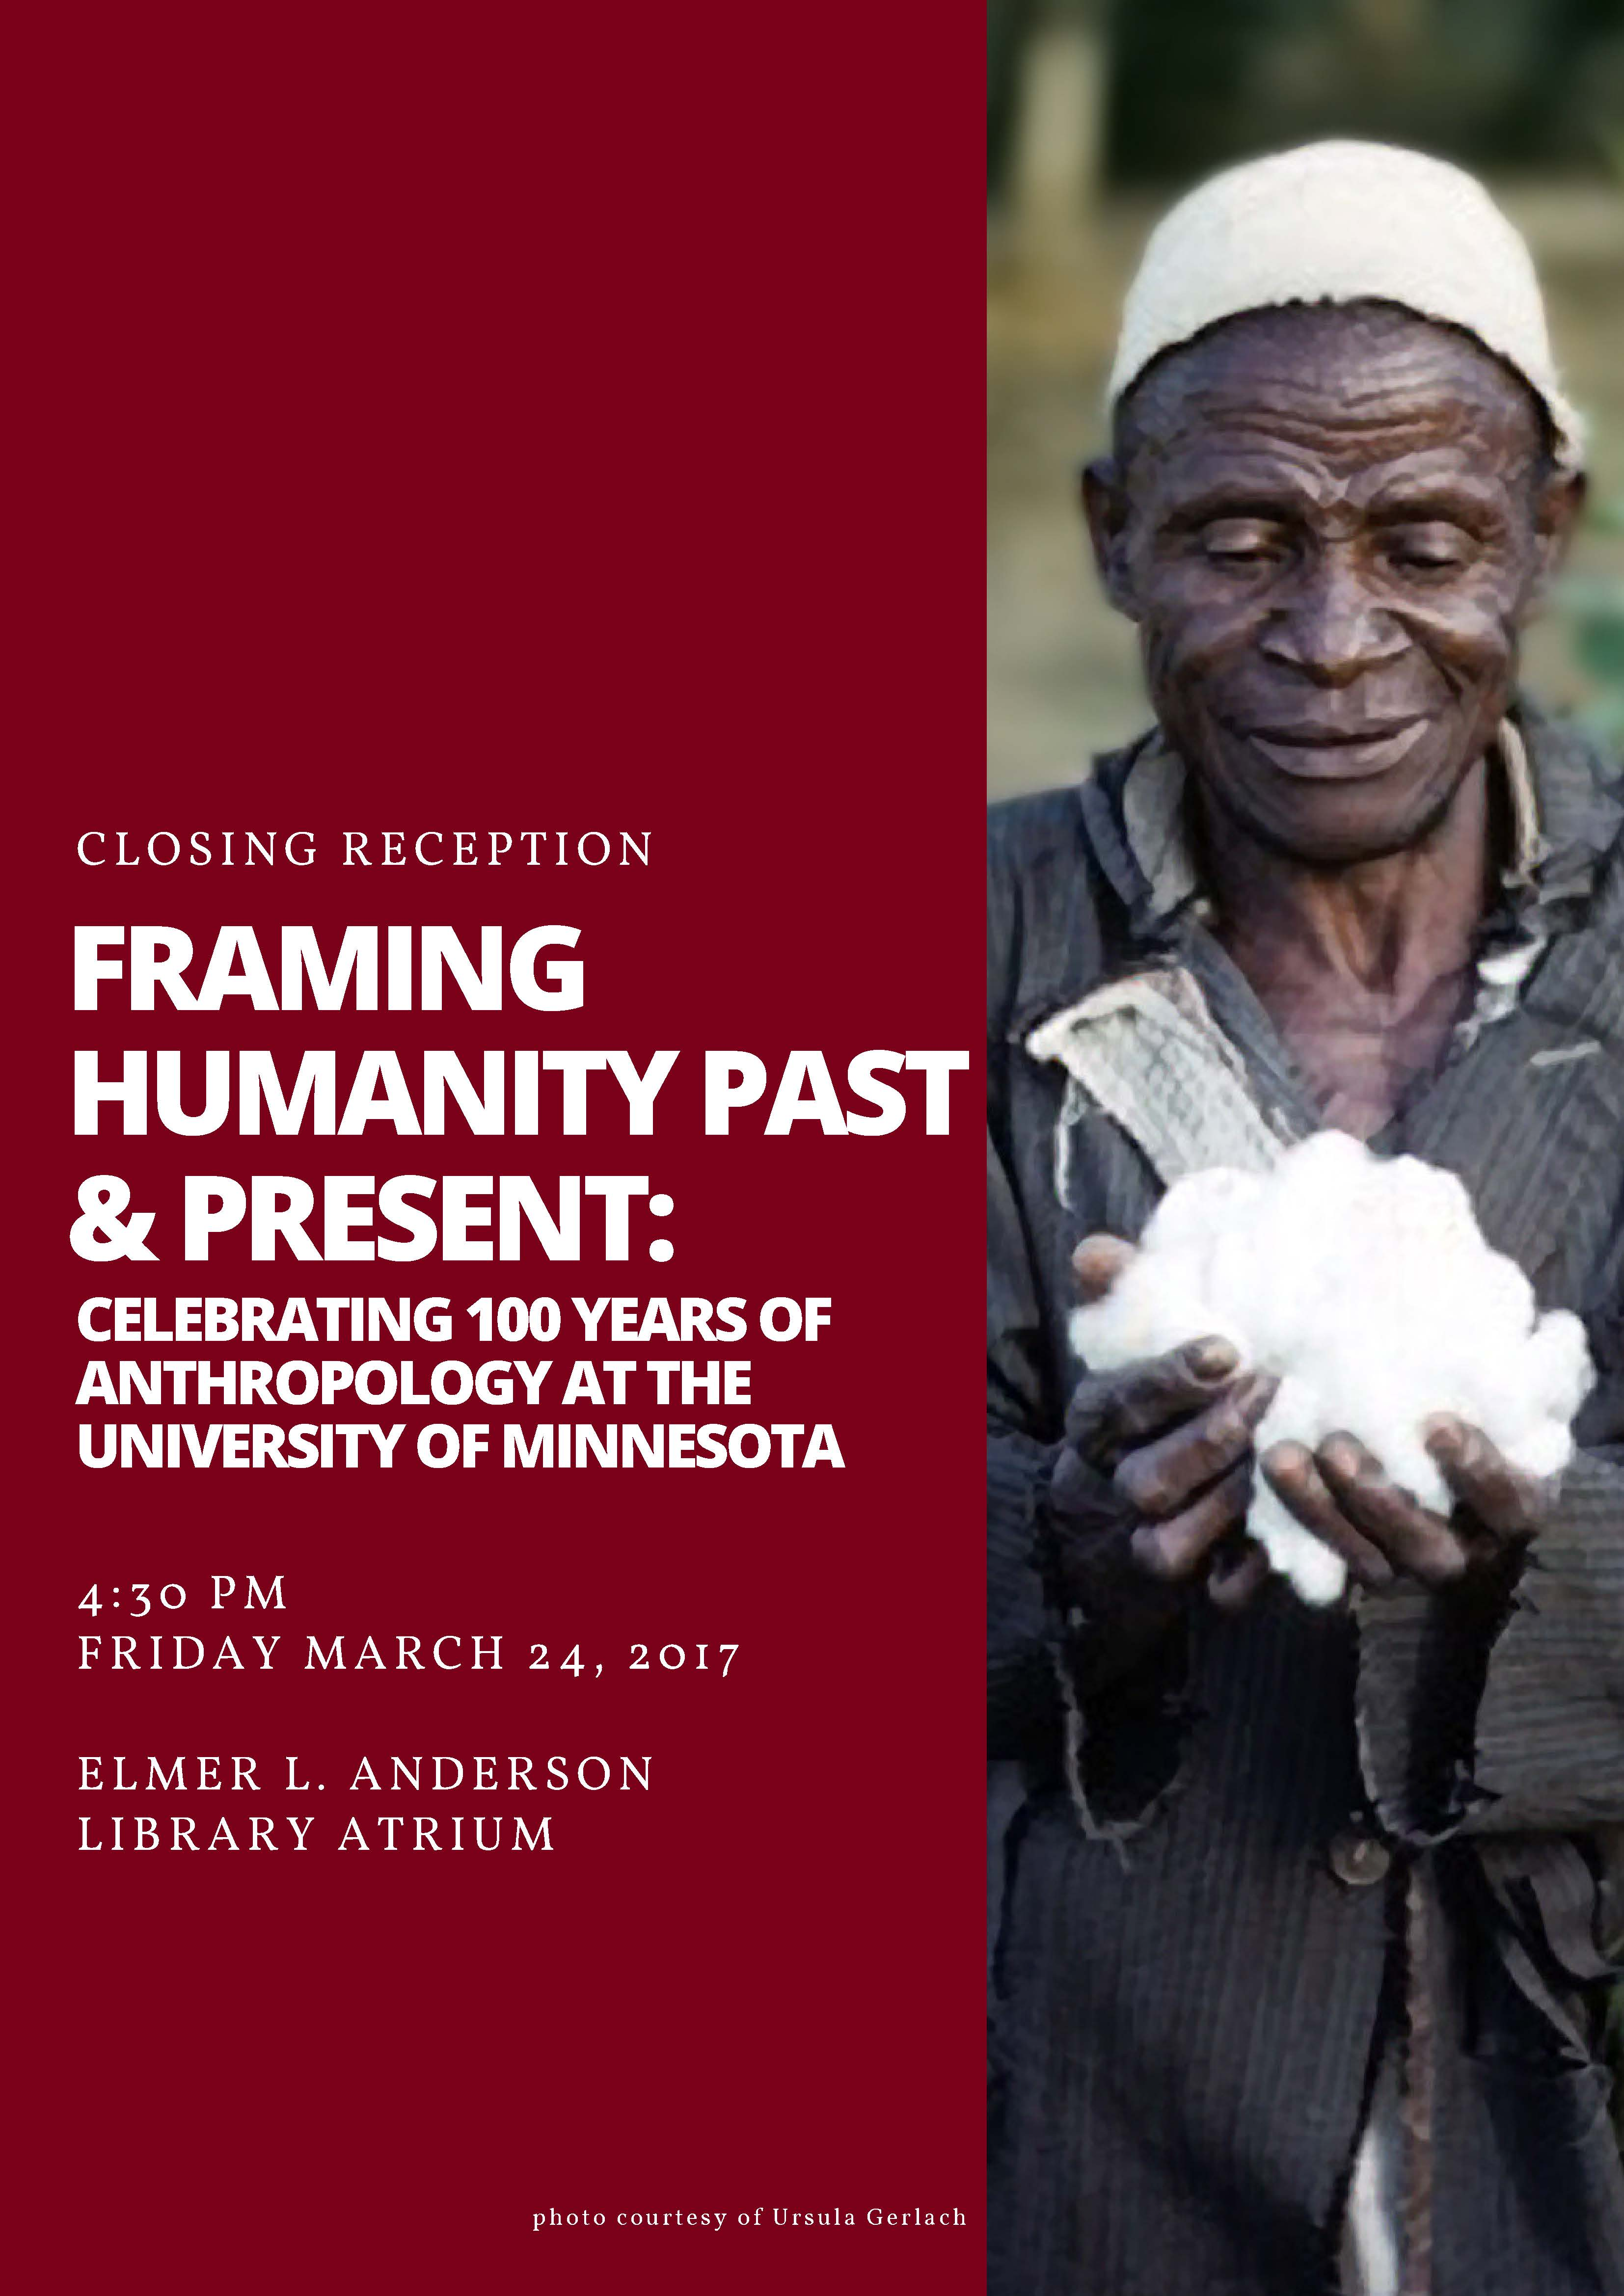 image is a poster for the reception, red with white text that reads Closing Reception Framing Humanity Past and Present: Celebrating 100 Years of Anthropology at the University of Minnesota